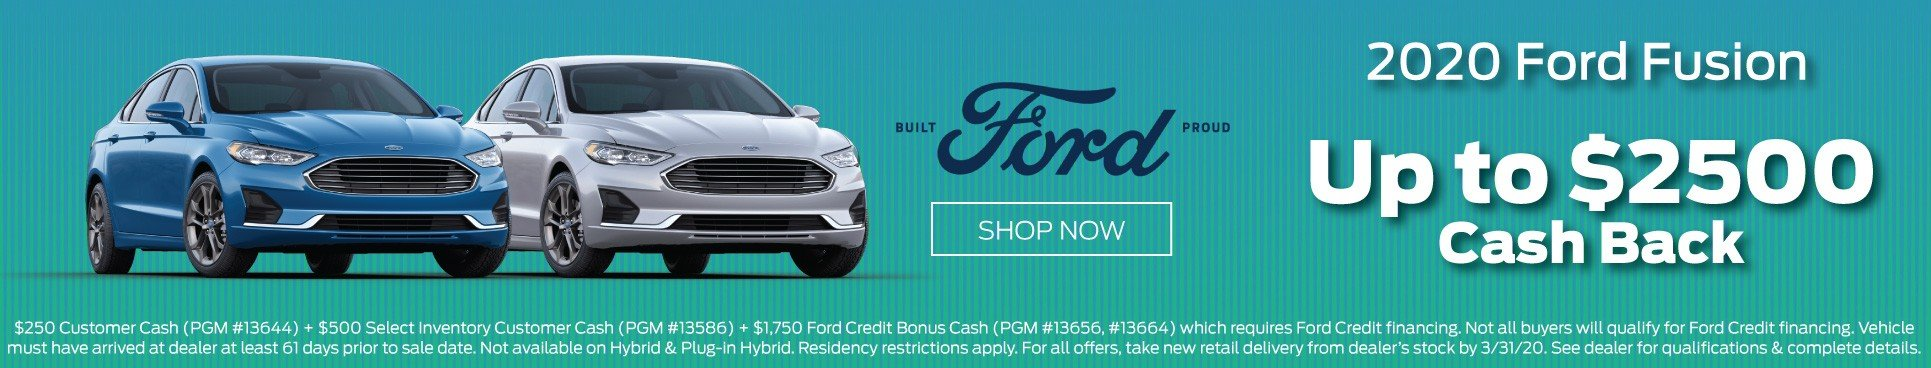 2019 Ford Fusion Offer 3-2020